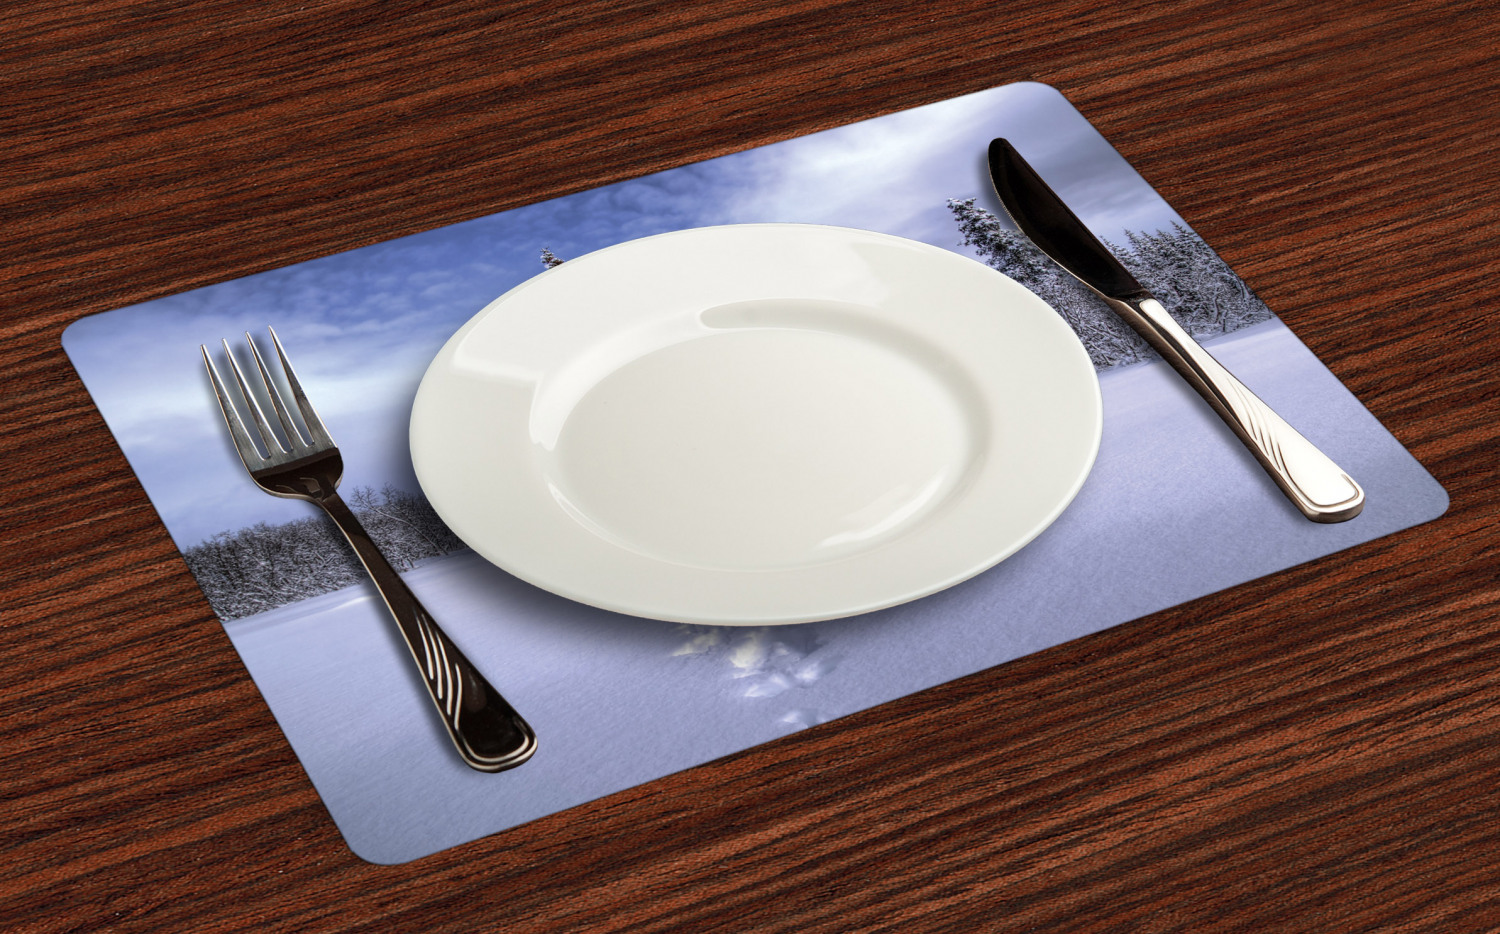 Ambesonne-Fabric-Place-Mats-Set-of-4-Placemats-for-Dining-Room-and-Kitchen-Table thumbnail 205